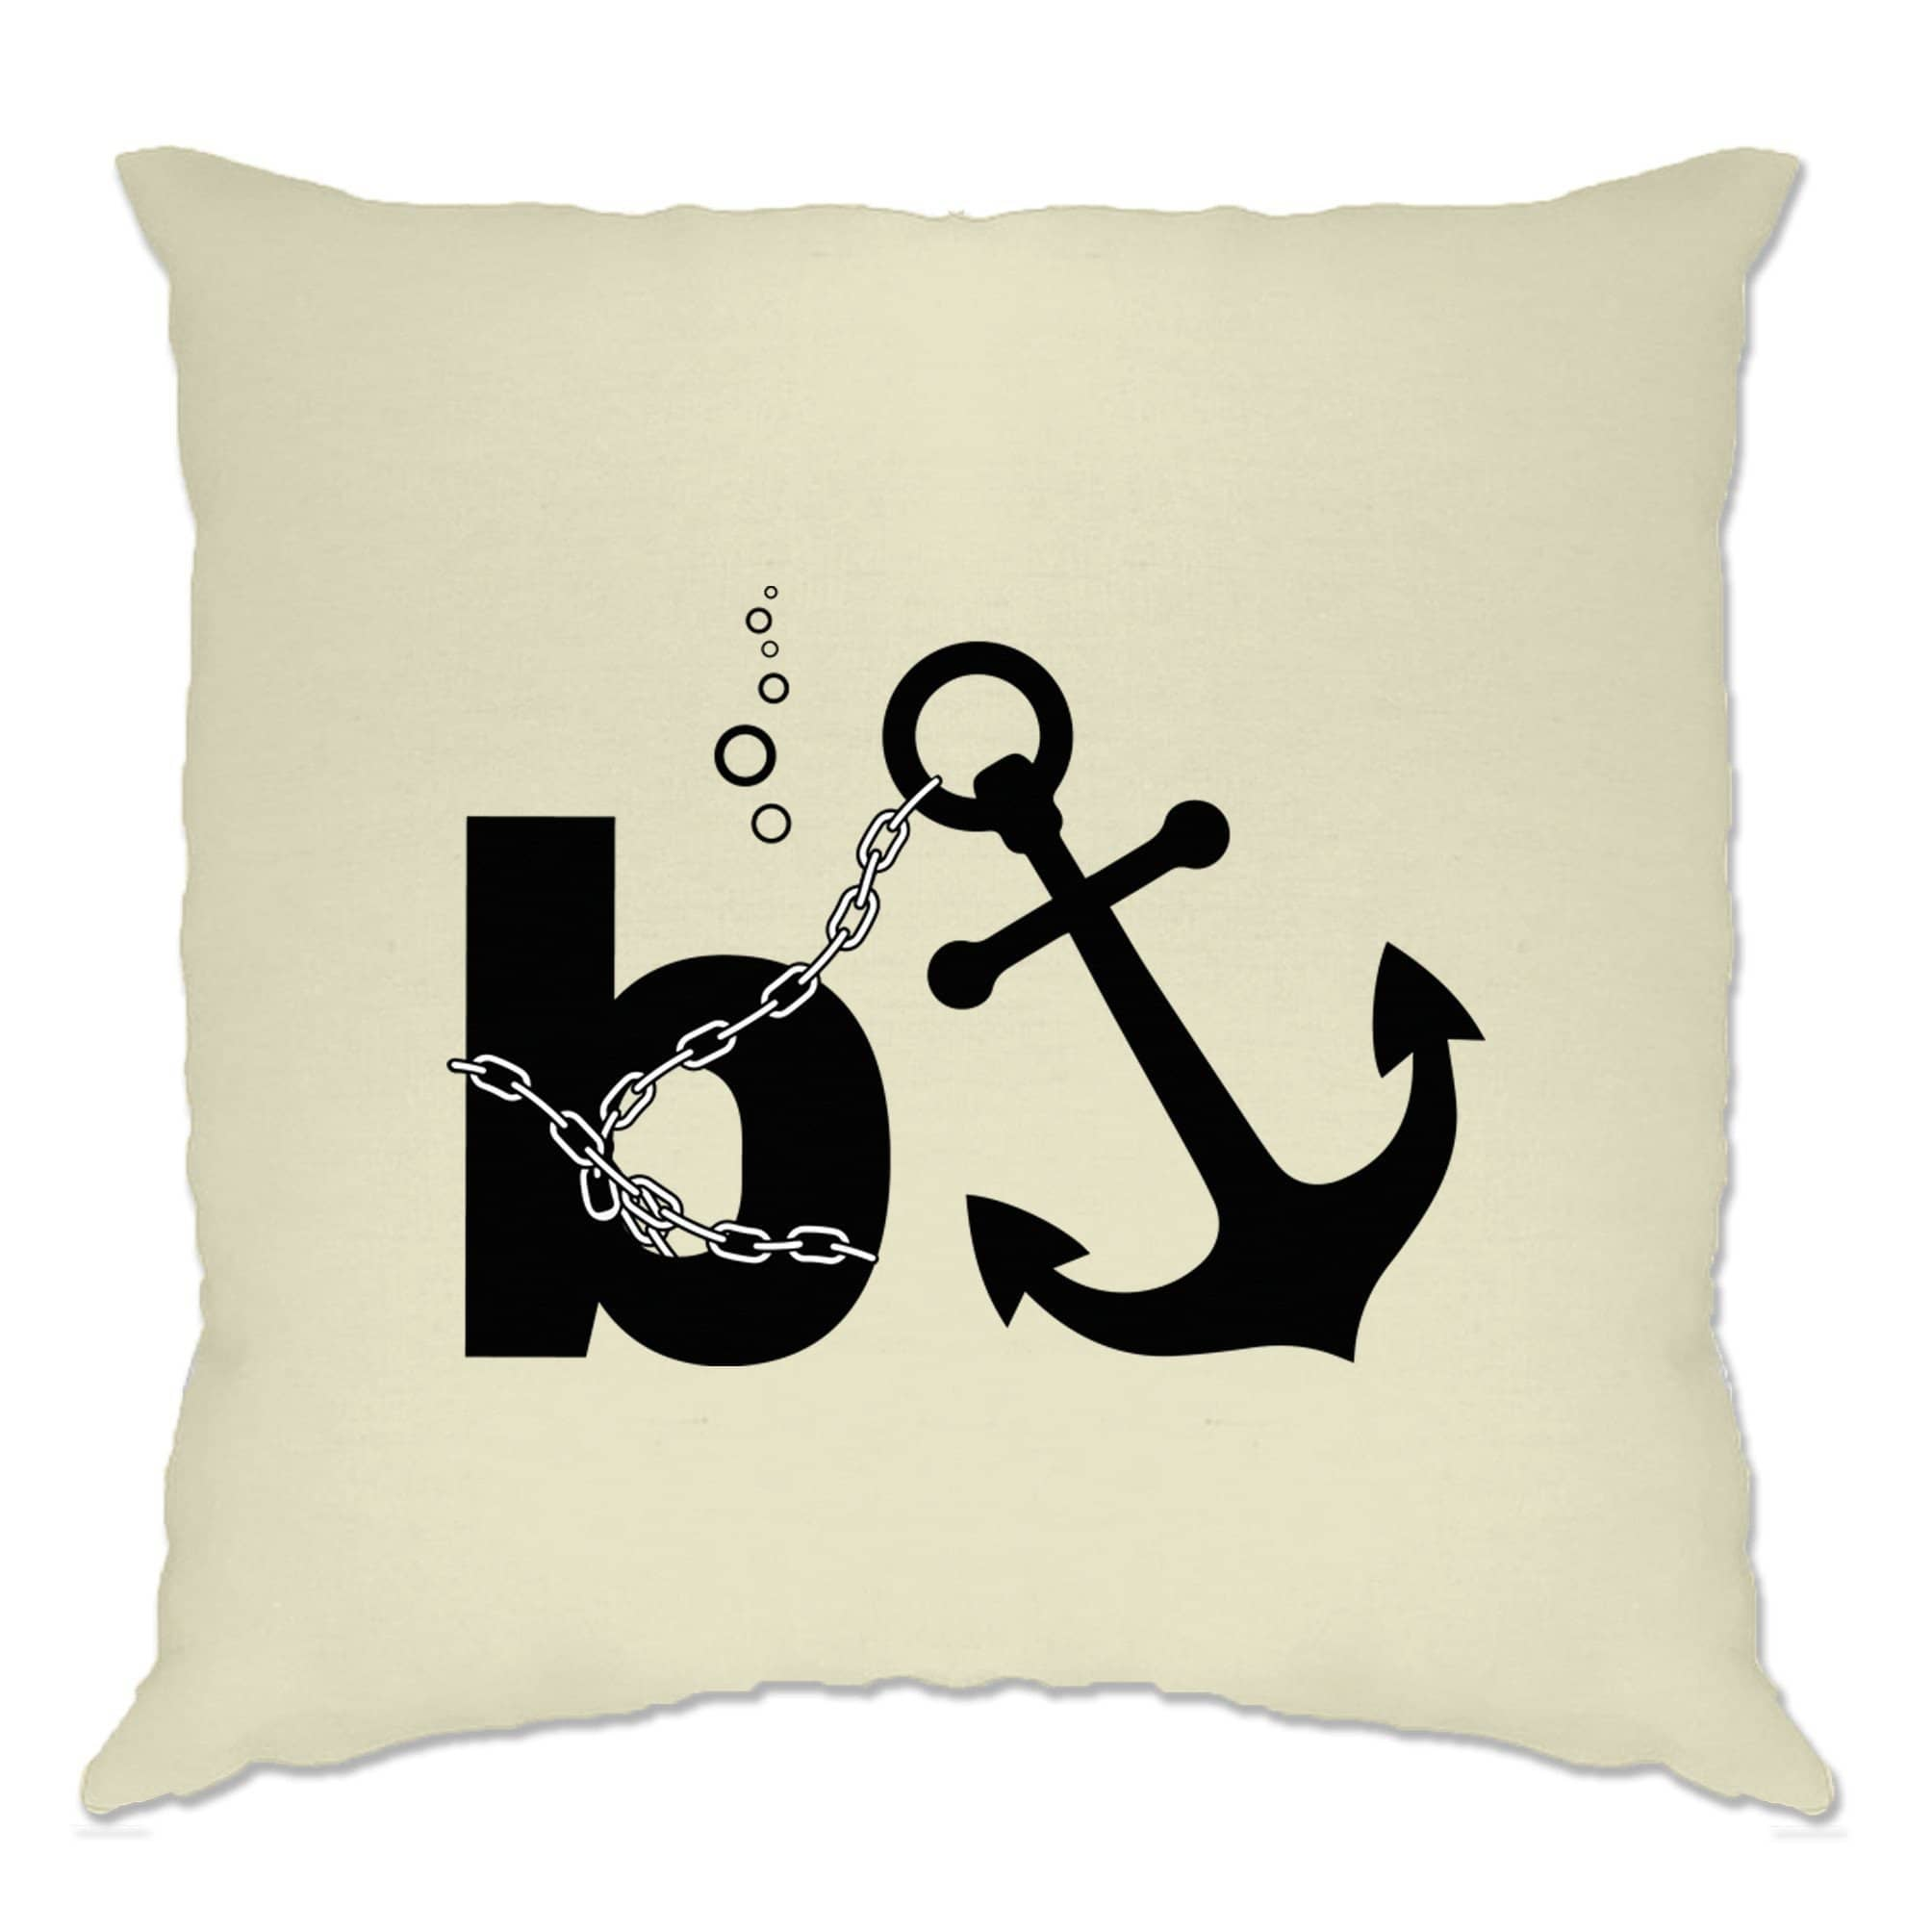 Capitalism Cushion Cover B Anchor Banker Joke